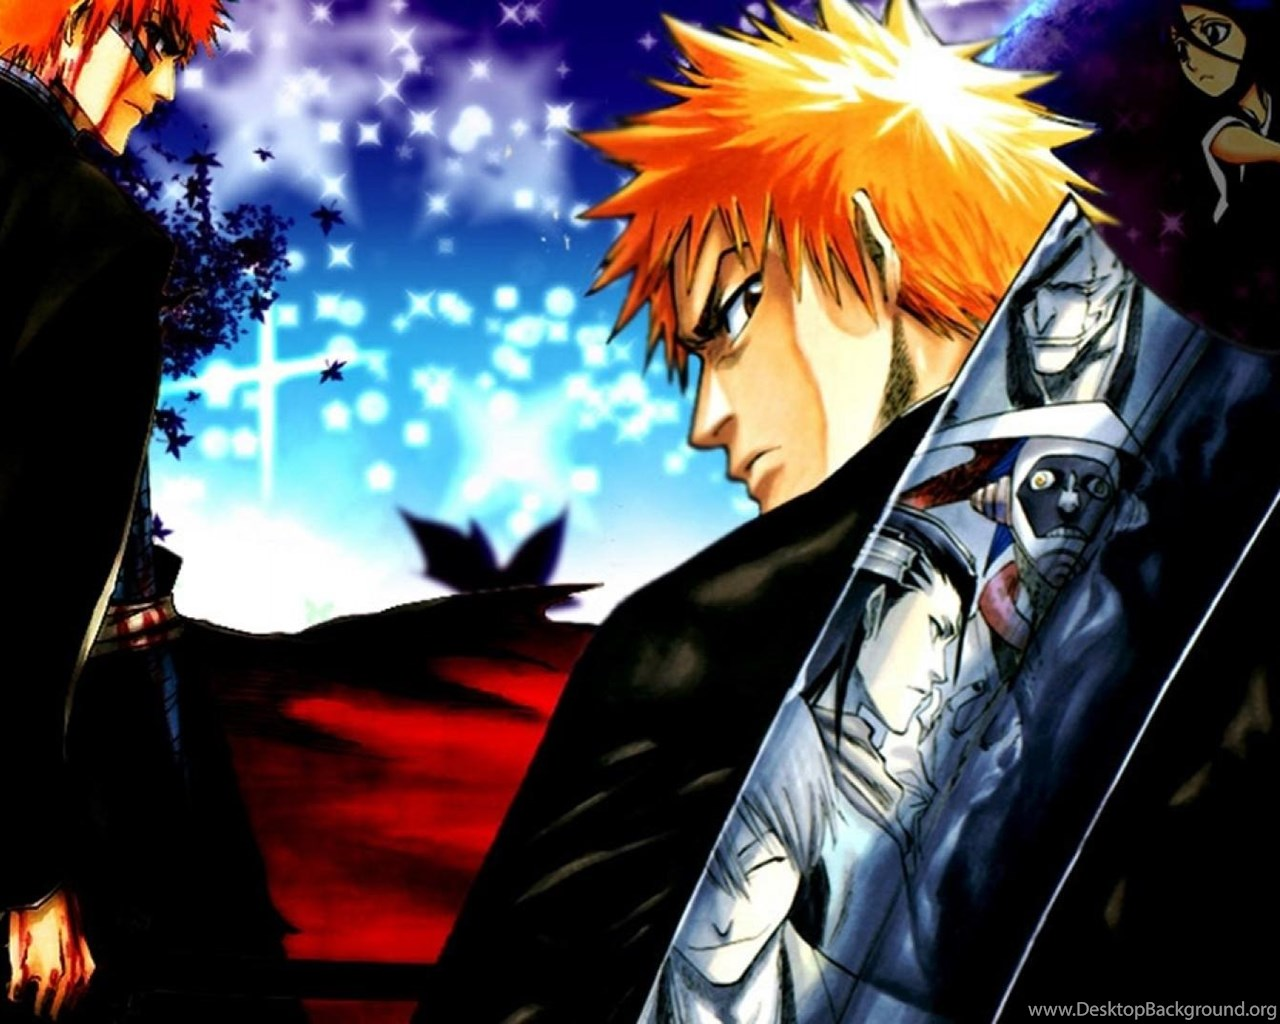 New Ipad Mini 1024 1024 Hd Wallpapers 100 Images Updated: Ichigo Kurosaki Hd Wallpapers Hd Wallpapers Desktop Background